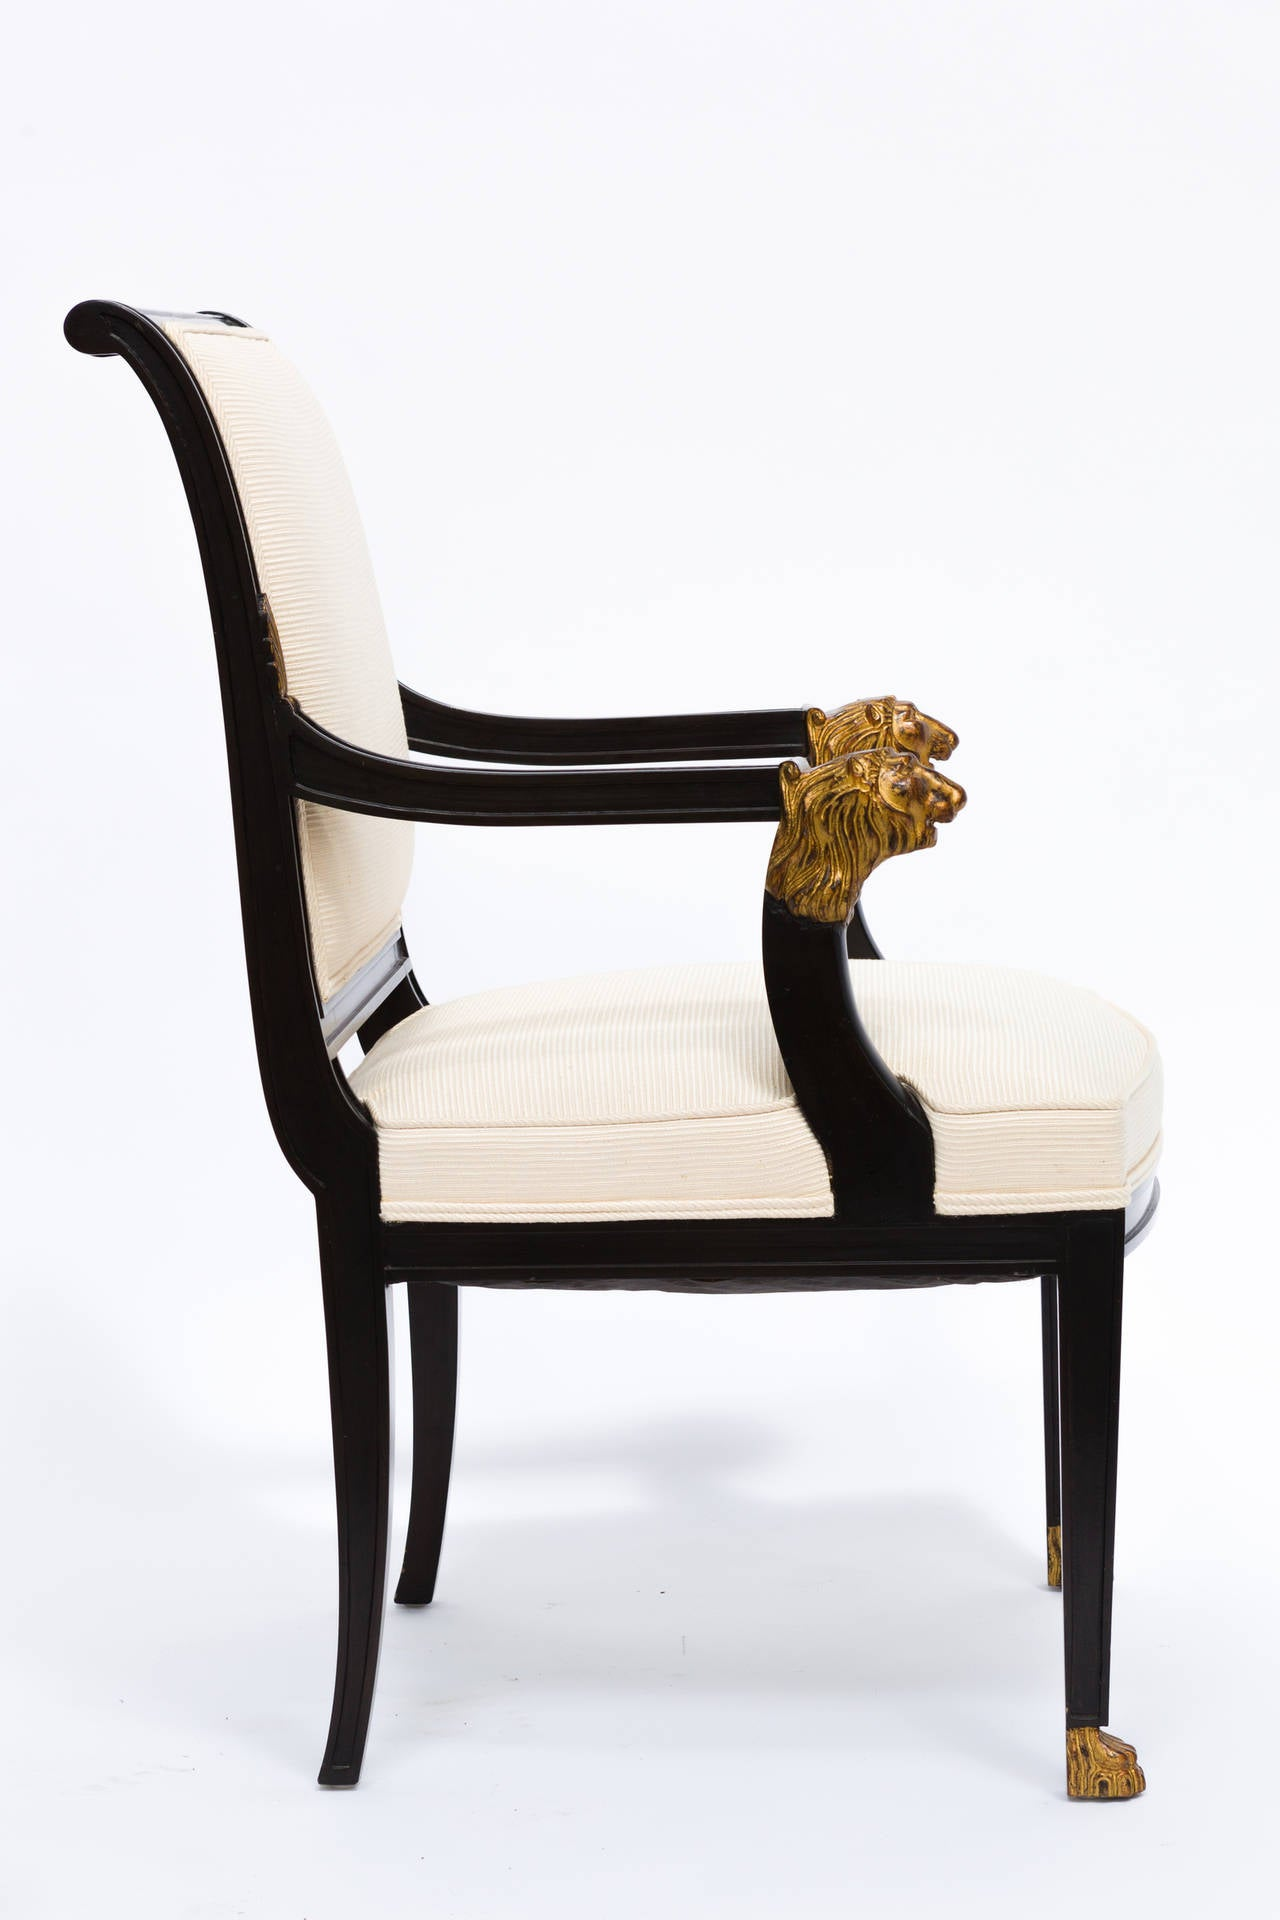 Lion Chair Carved Wood Lion Chairs 14 Available For Sale At 1stdibs